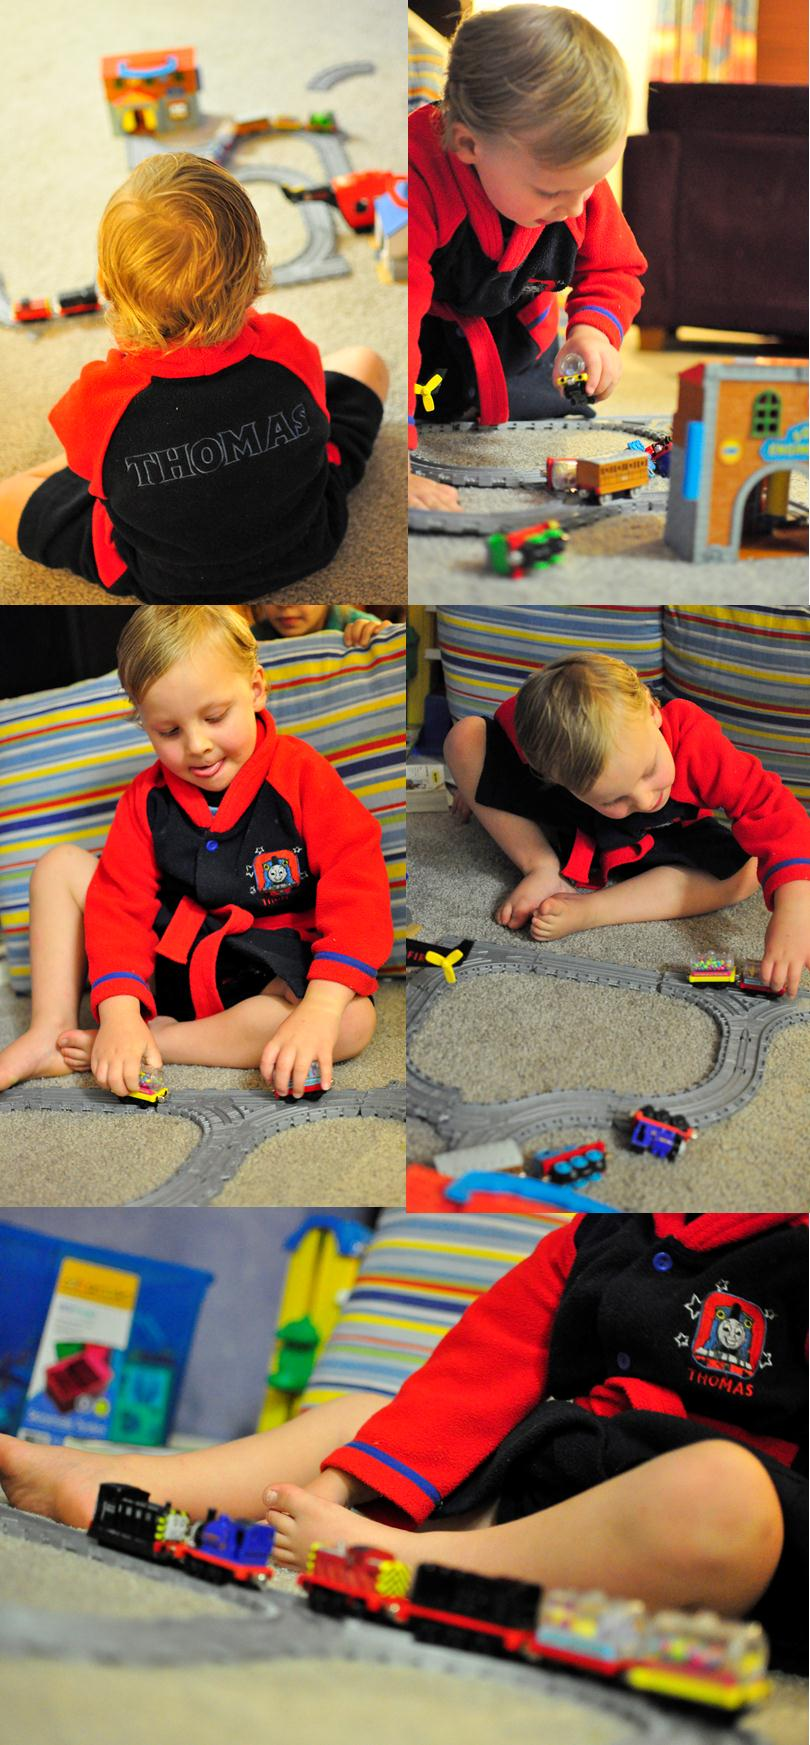 playing with Thomas the Tank Engine Play Set Trains